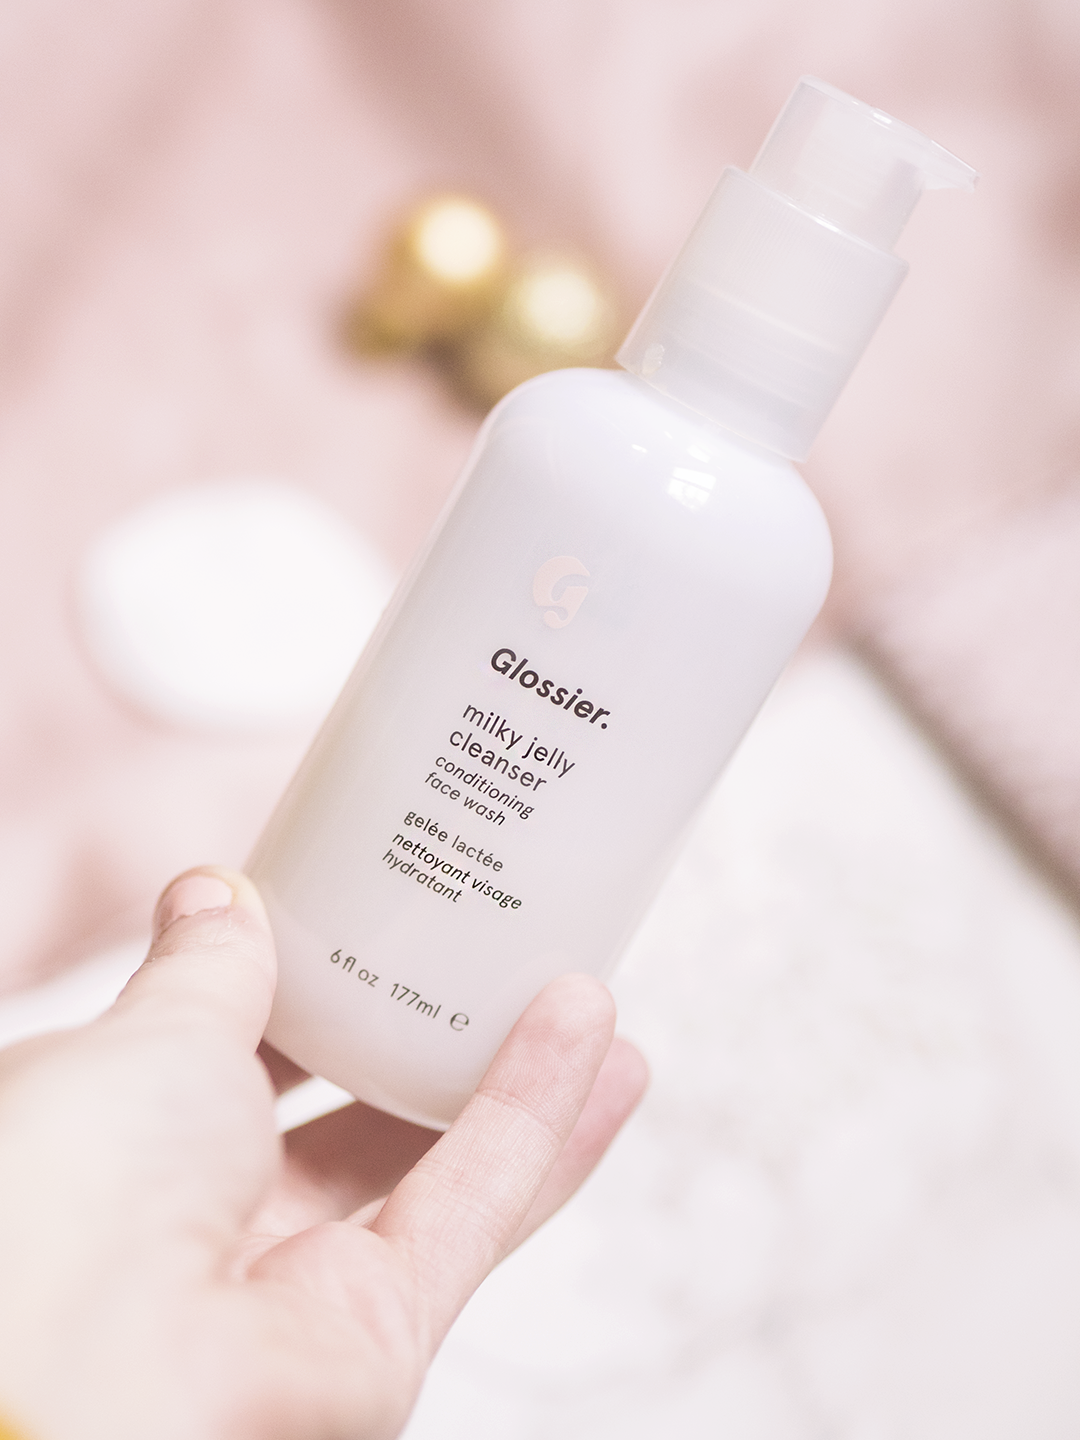 The Winter Skincare Glossier Milky Jelly Cleanser